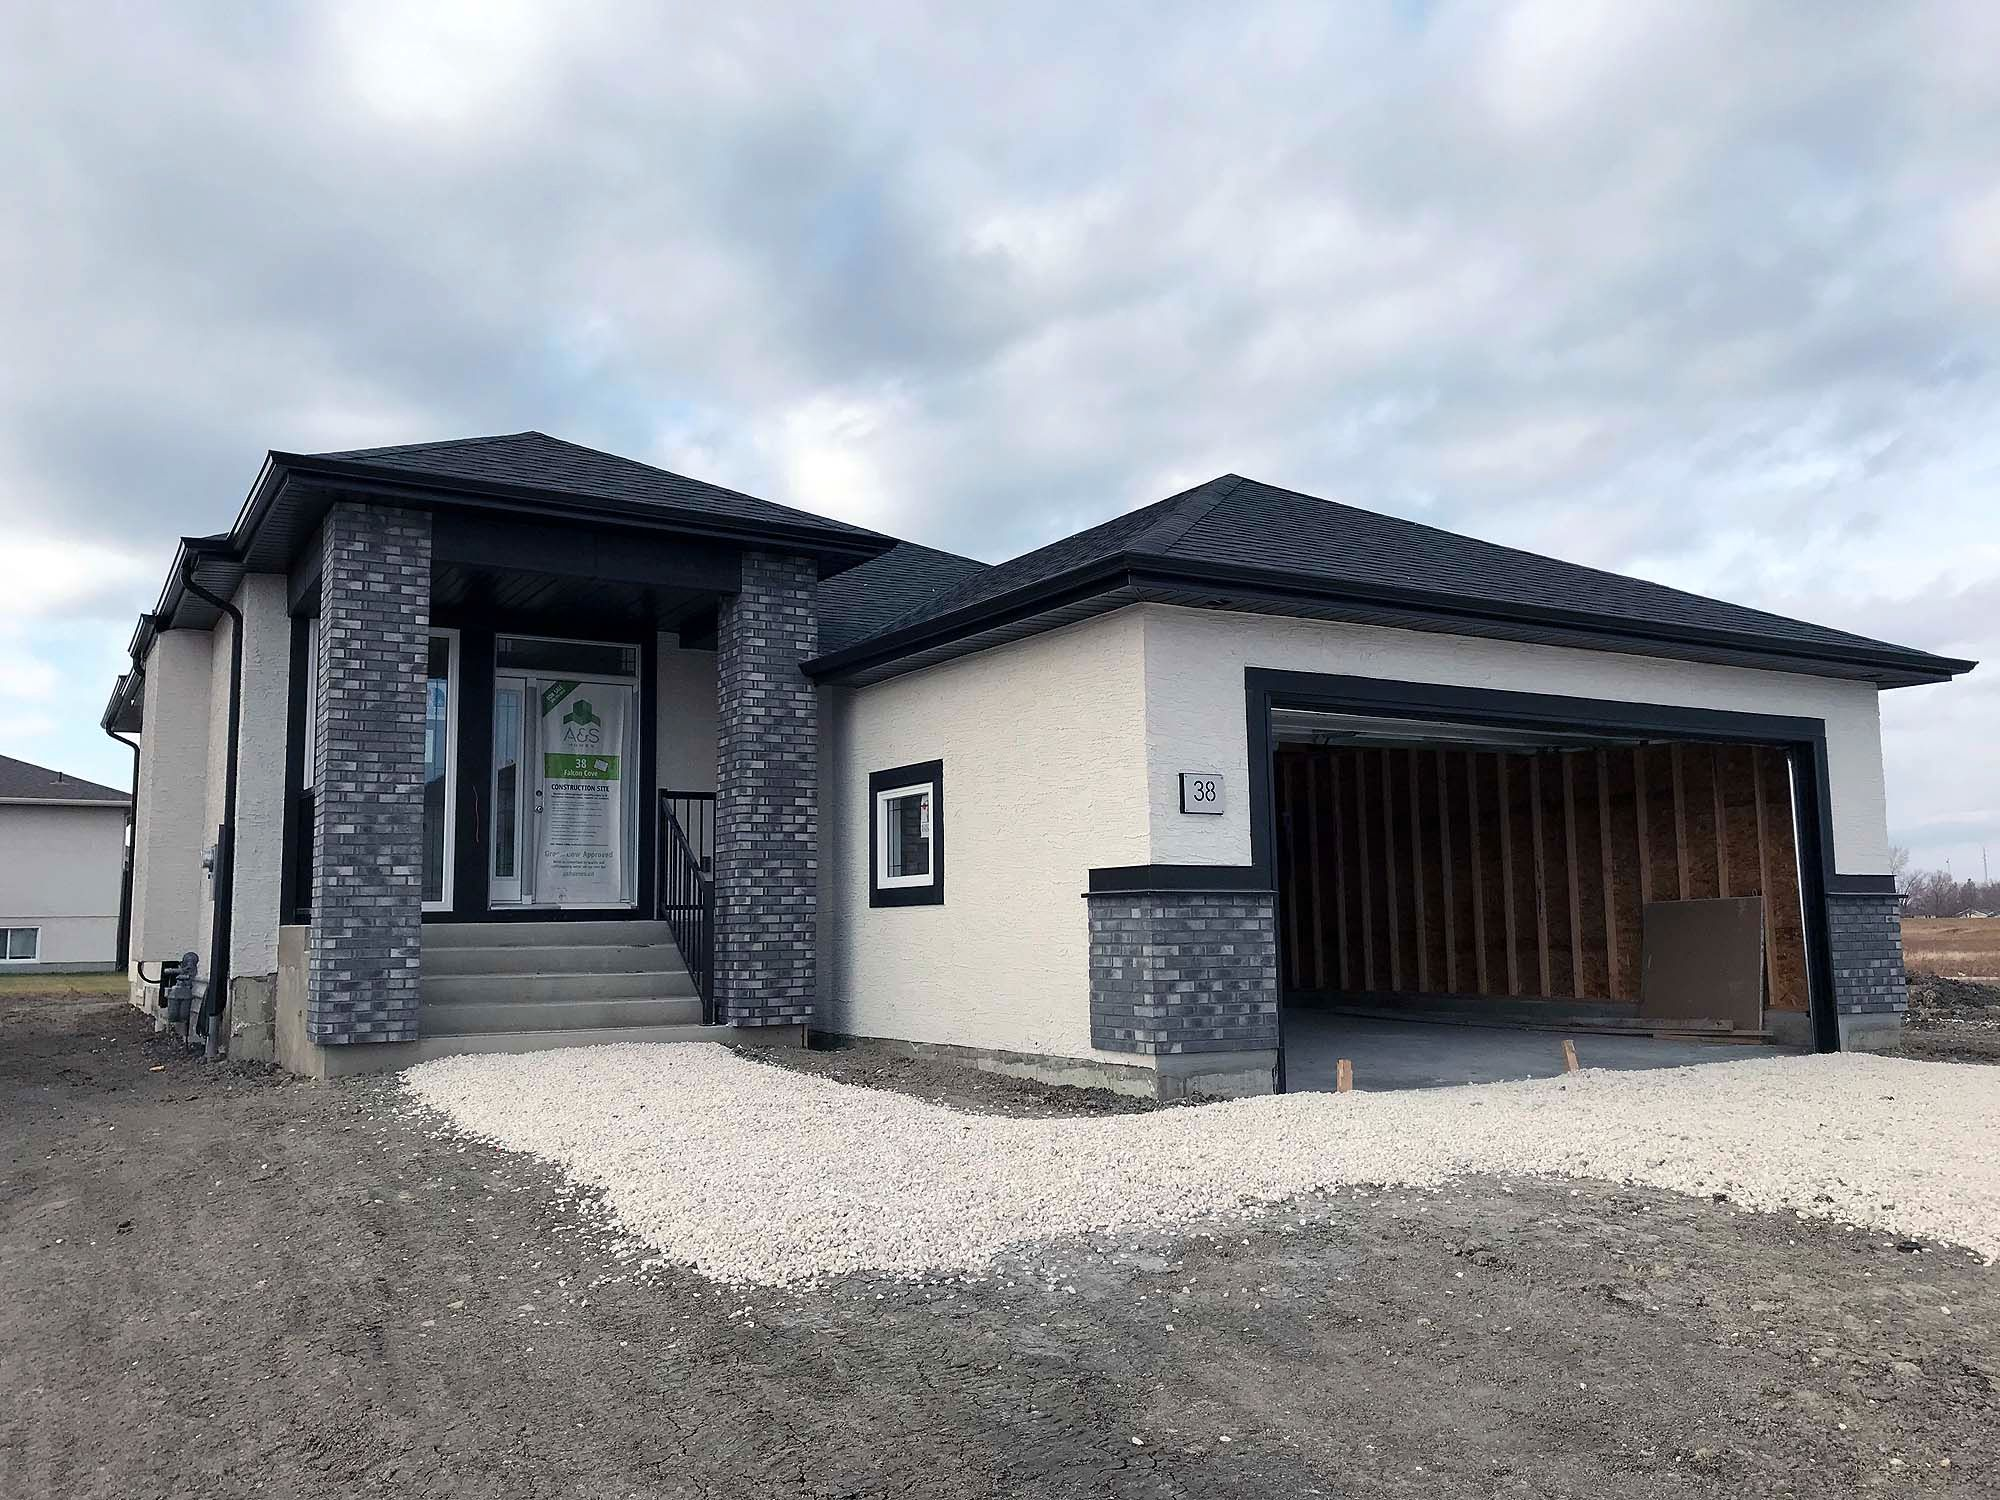 Main Photo: 38 Falcon Cove in St Adolphe: Tourond Creek Residential for sale (R07)  : MLS®# 202027282